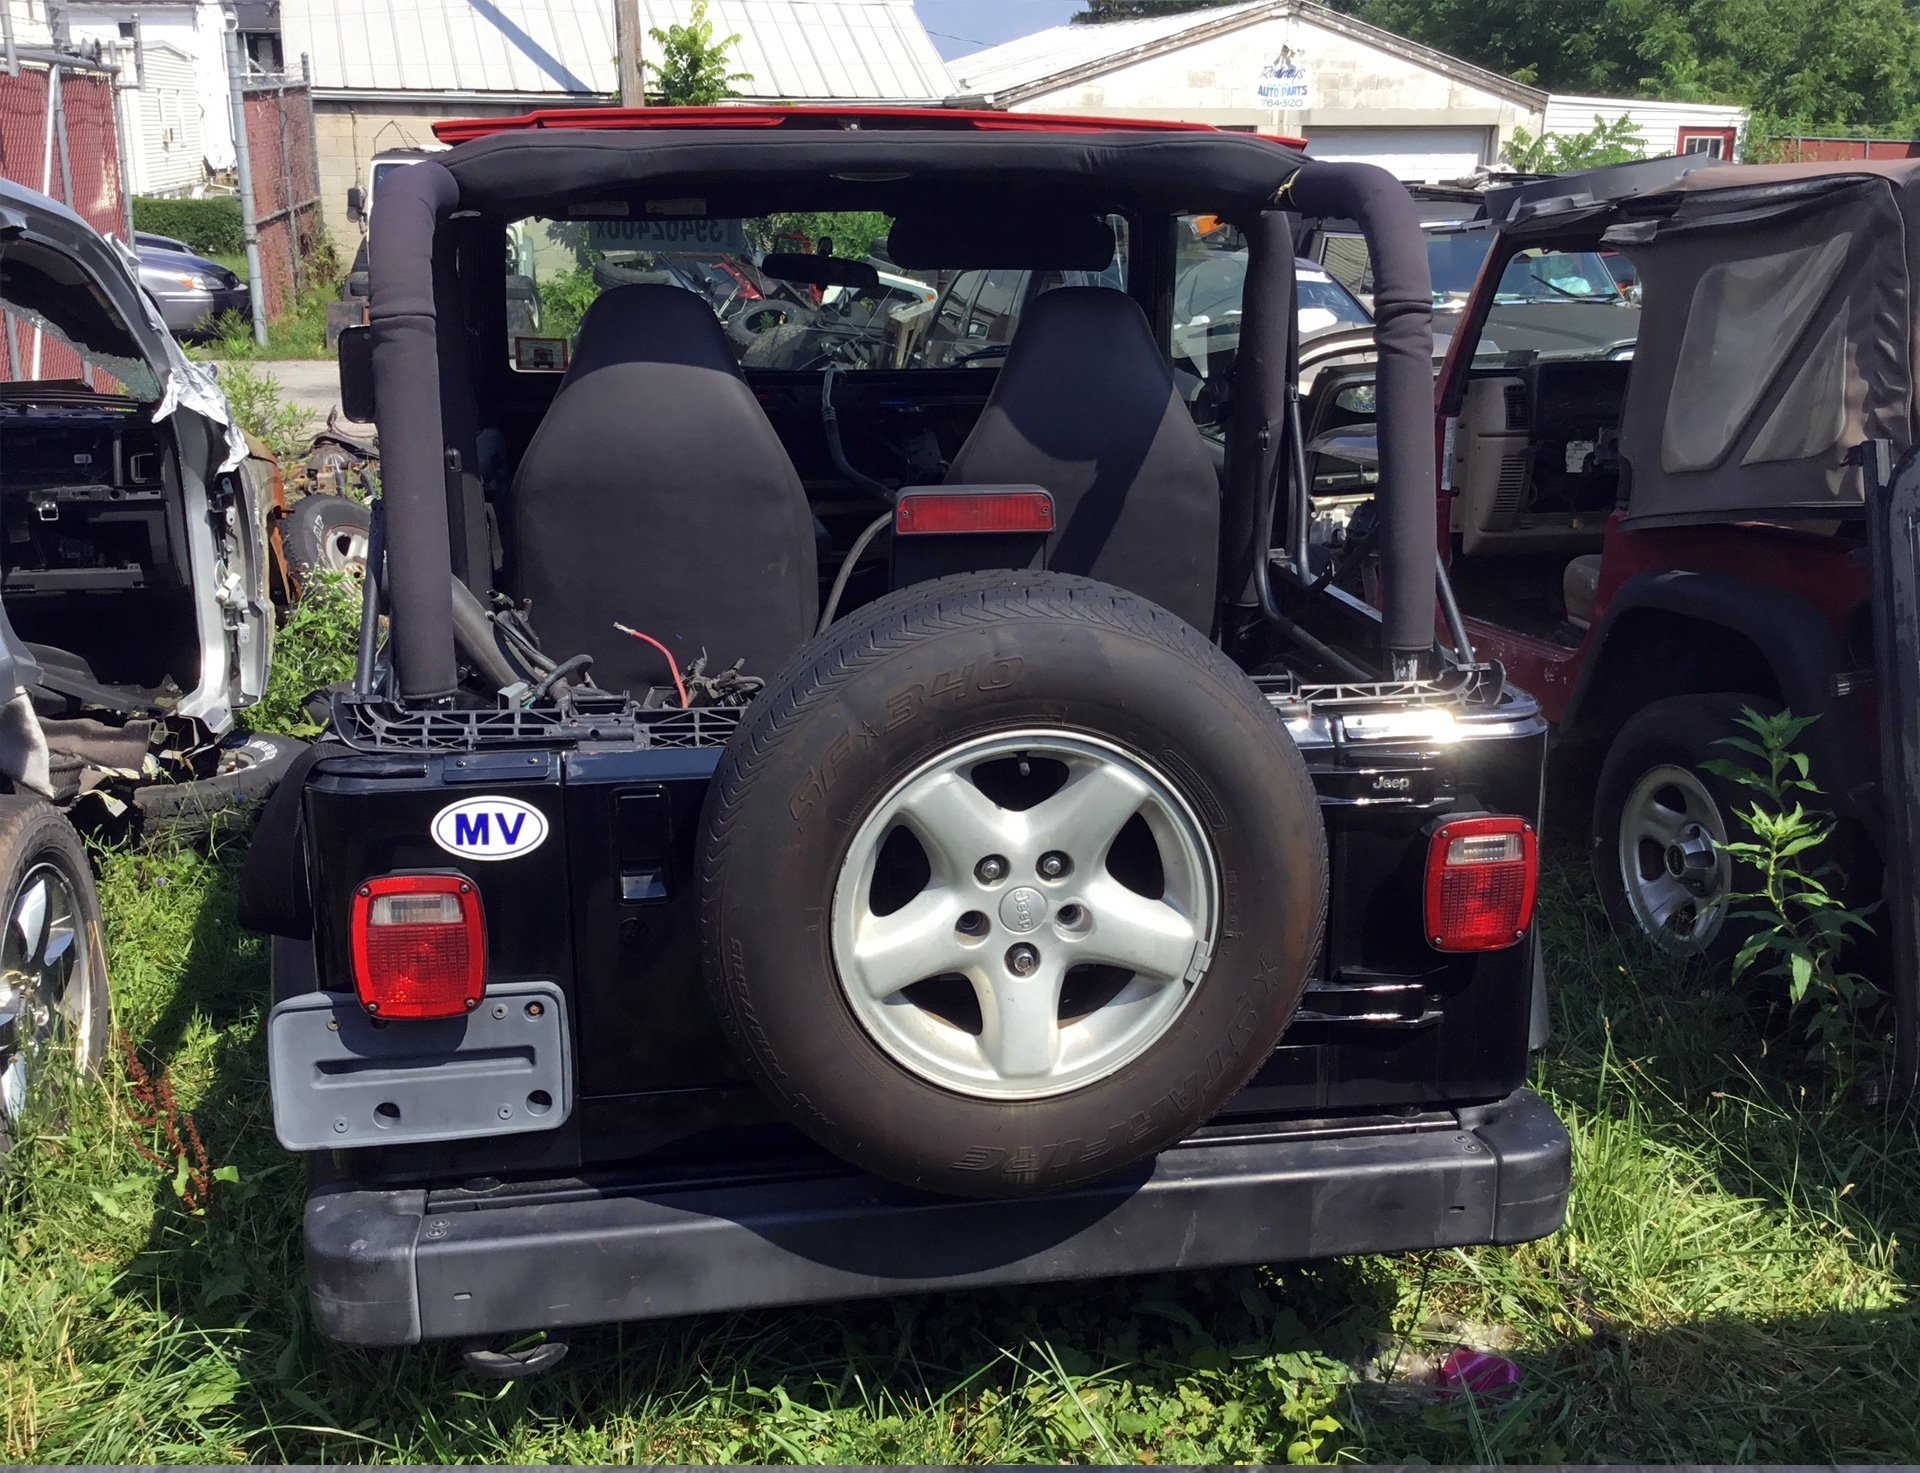 Rodneys Used Auto Parts Photo Gallery Dover Pa Off Road Jeep Wrangler Diagram View All